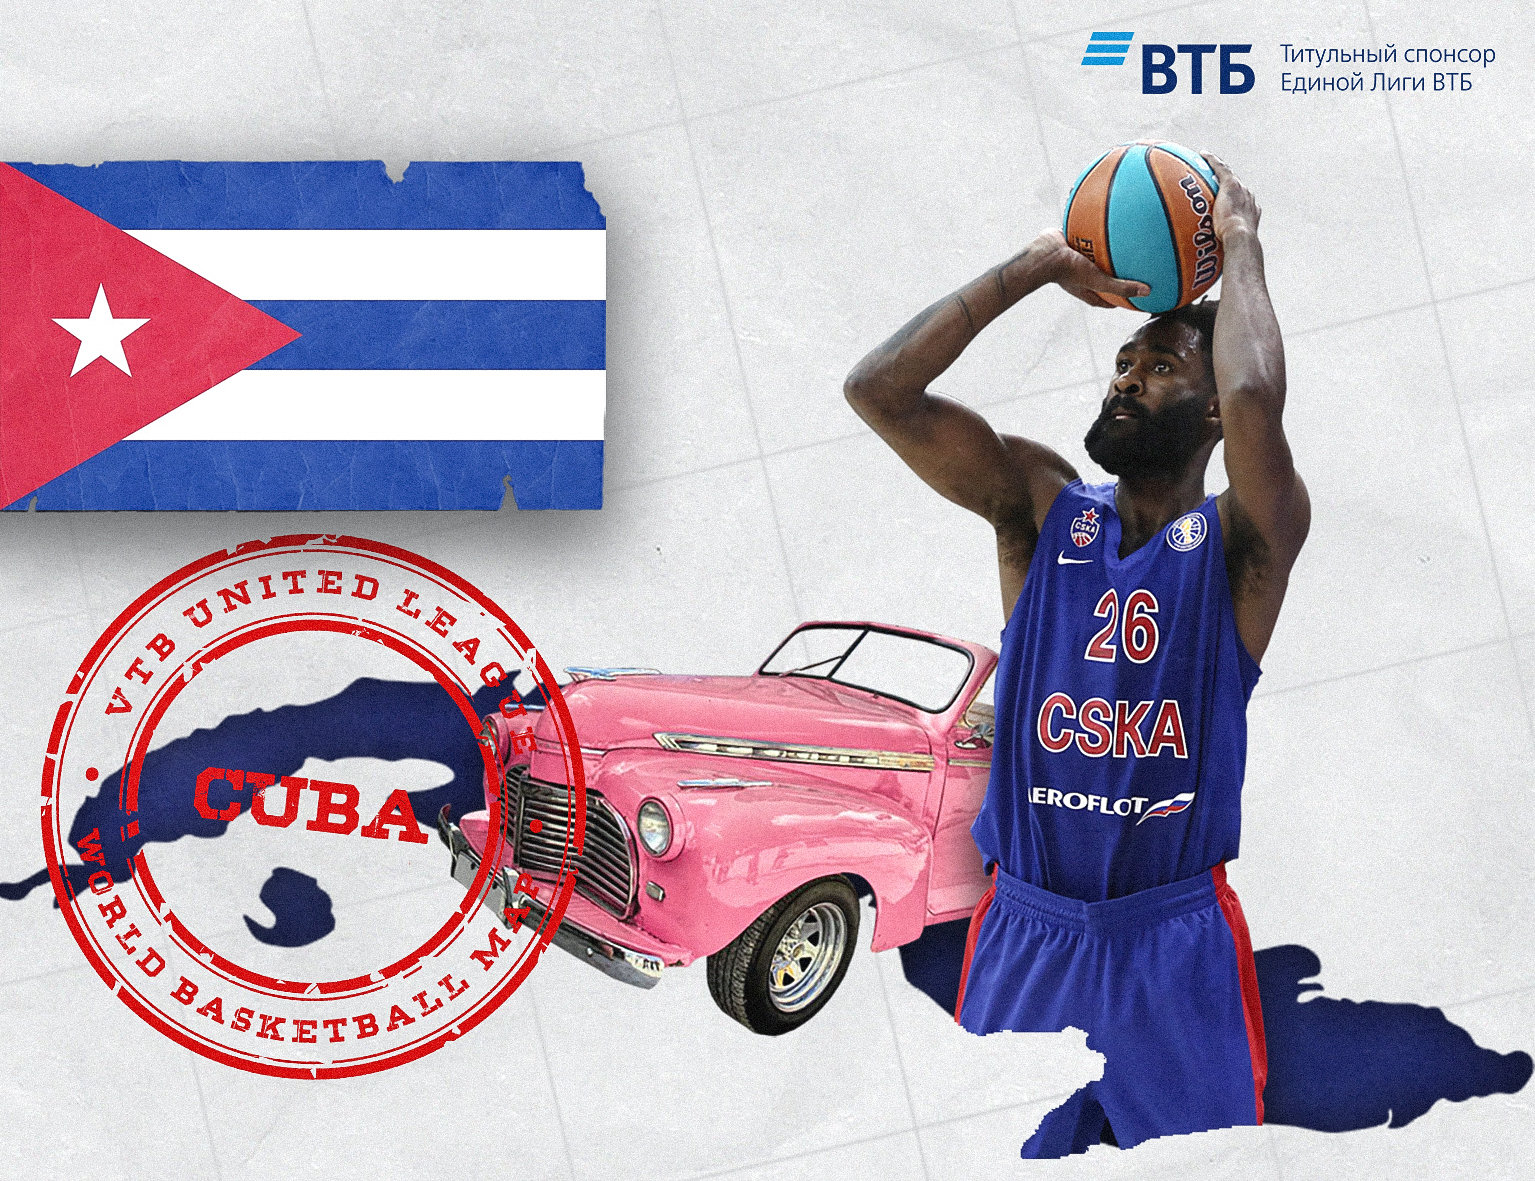 World basketball map: Cuba